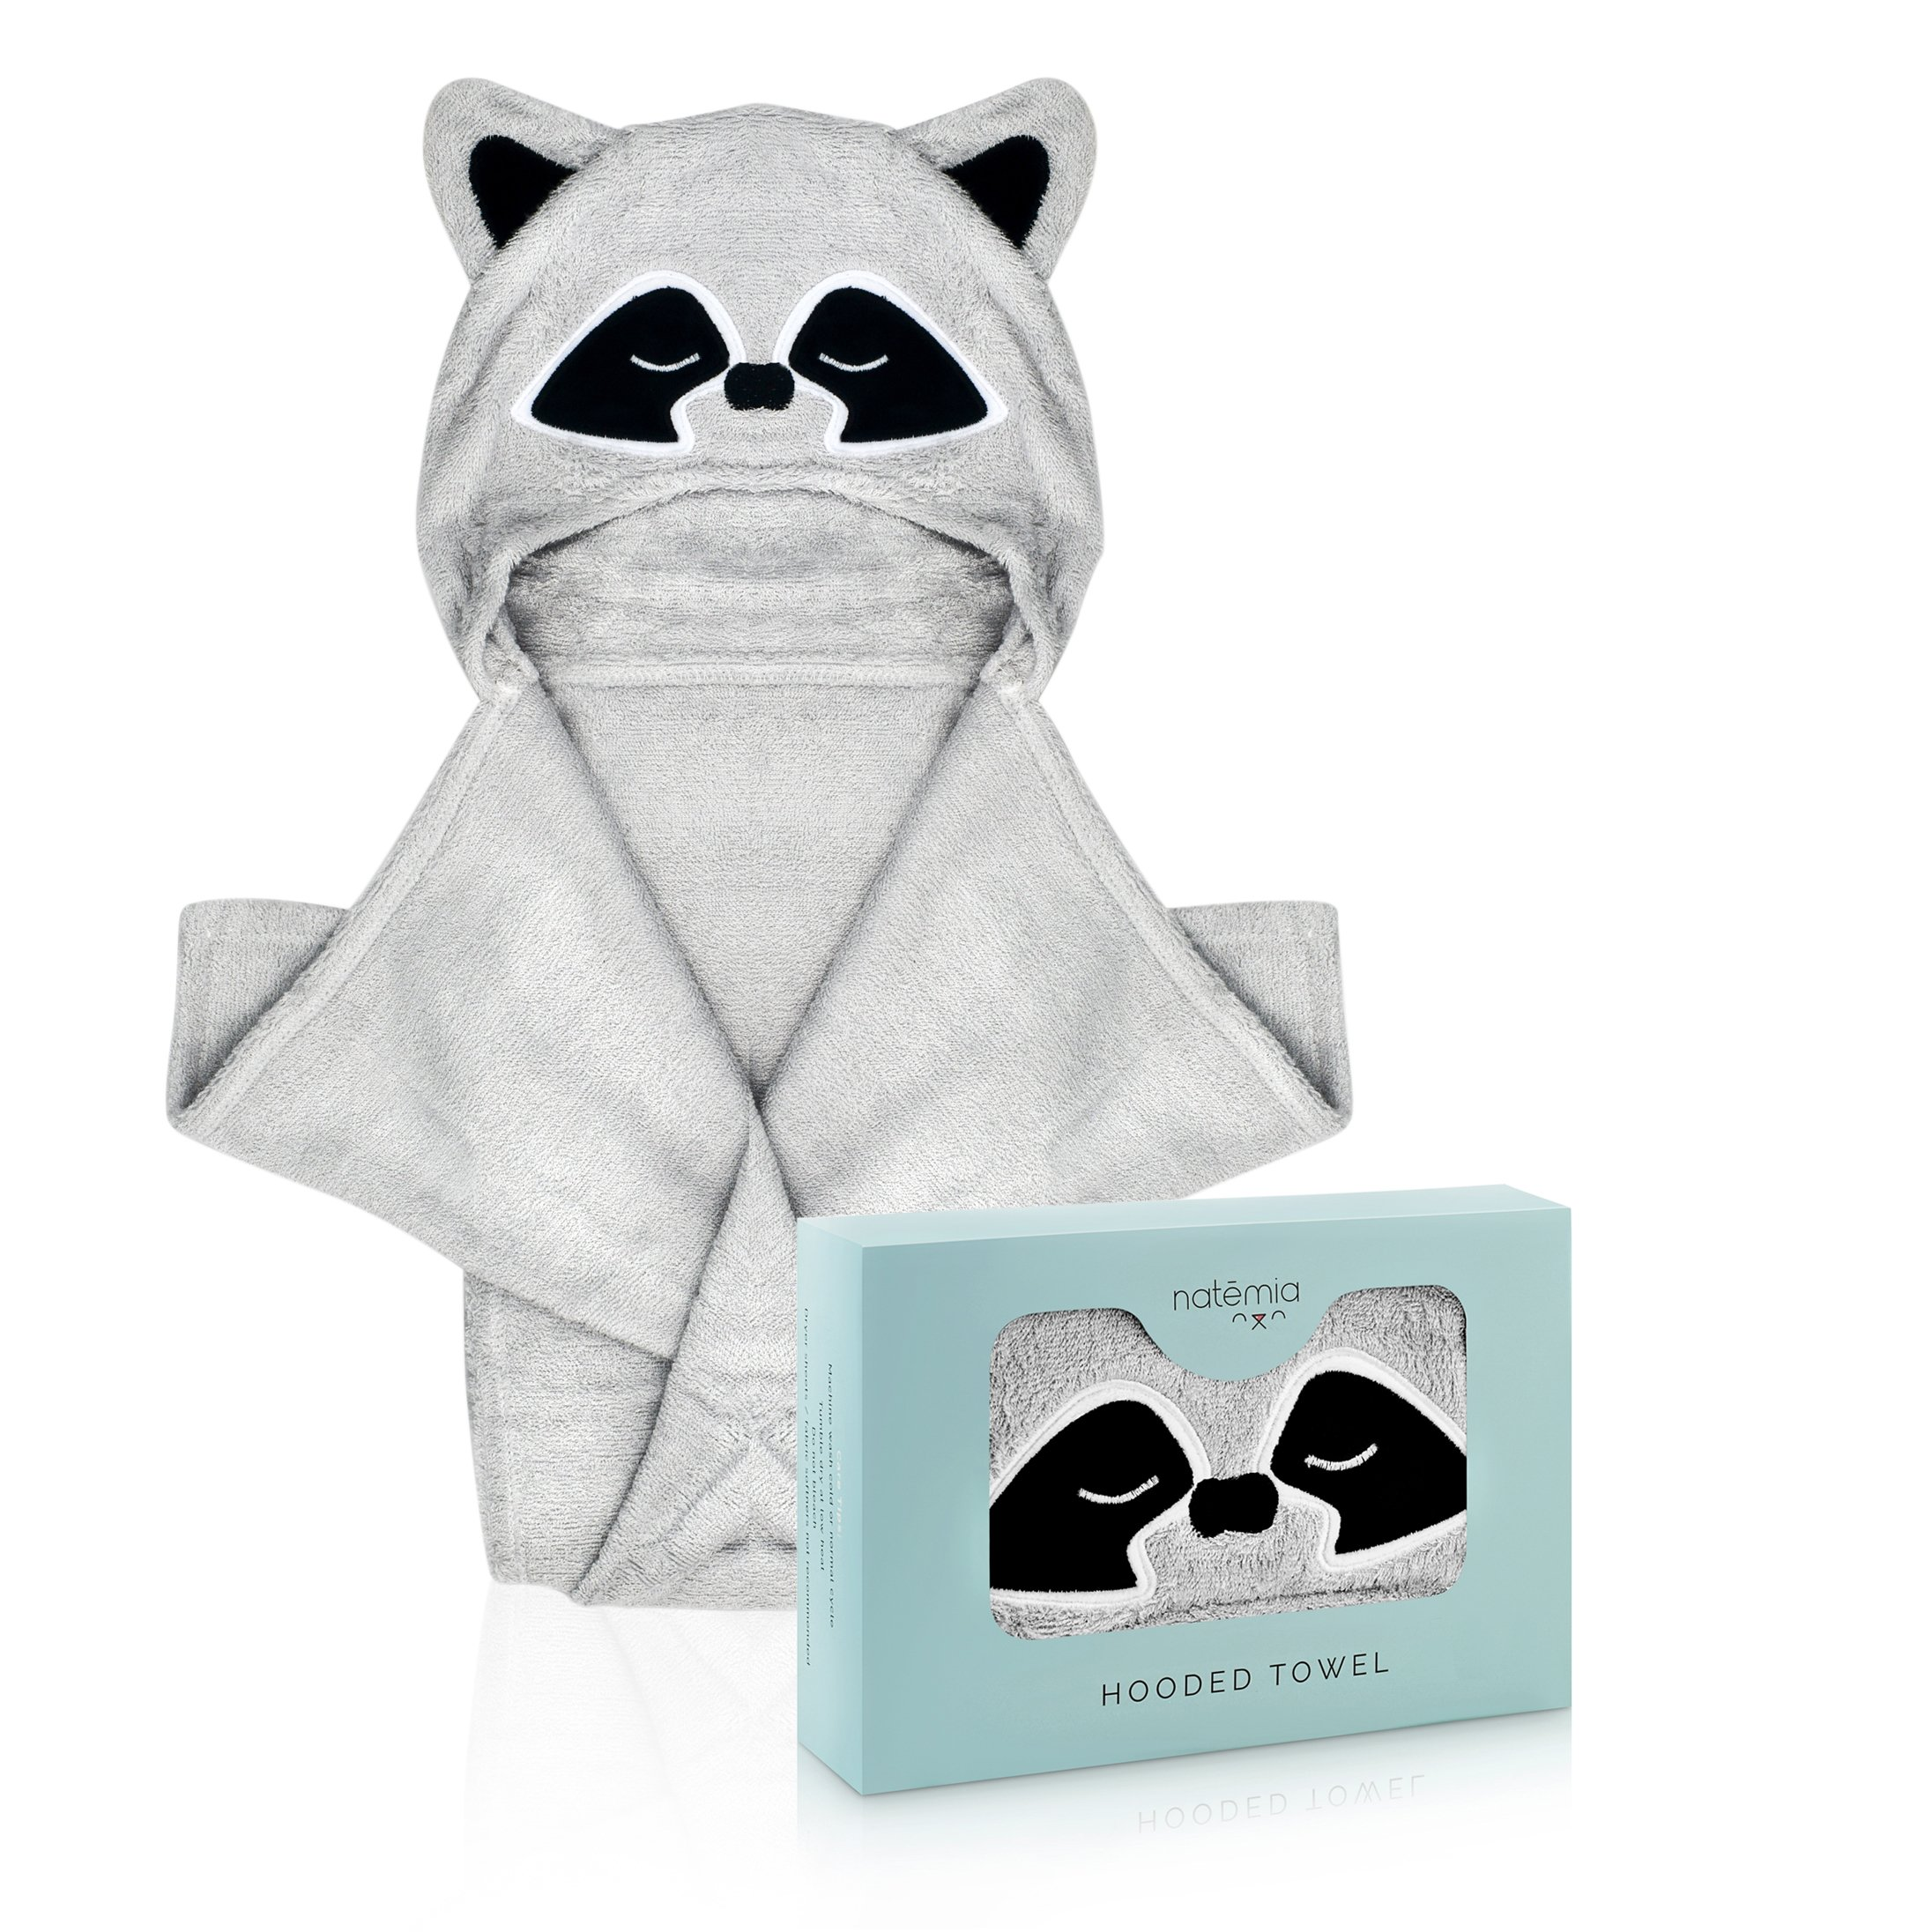 Natemia Extra Soft Rayon from Bamboo Hooded Towel for Kids   Highly Absorbent and Hypoallergenic   40'' X 30'' Large Animal Face Baby Bath Towel with Hood   Great Baby Shower  Registry Gift by Natemia